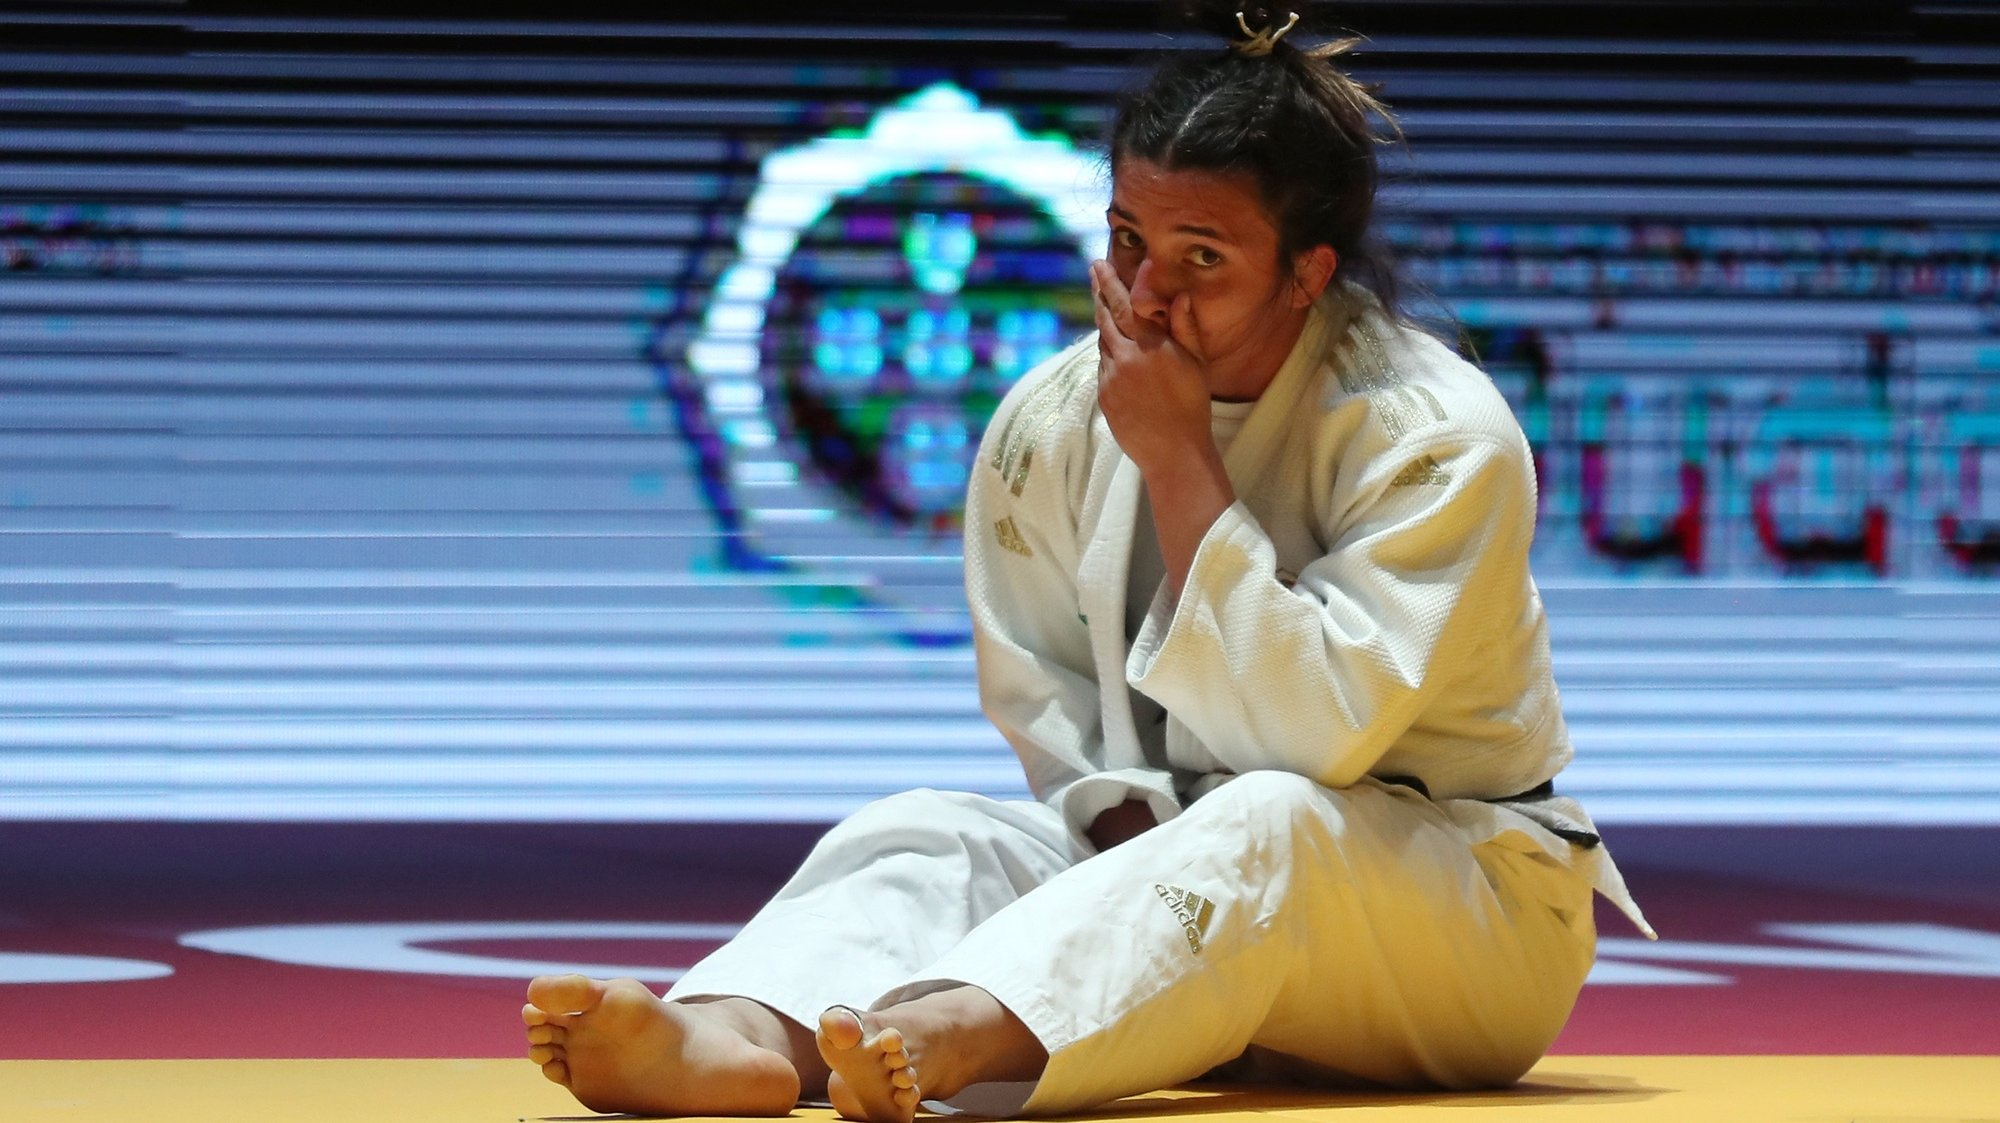 epa09141933 Barbara Timo of Portugal cryes after winning the bronze medal match against Lara Cvjetko of Croatia in woman's -70kg category at the European Judo Championships in Lisbon, Portugal, 17 April 2021.  EPA/NUNO VEIGA